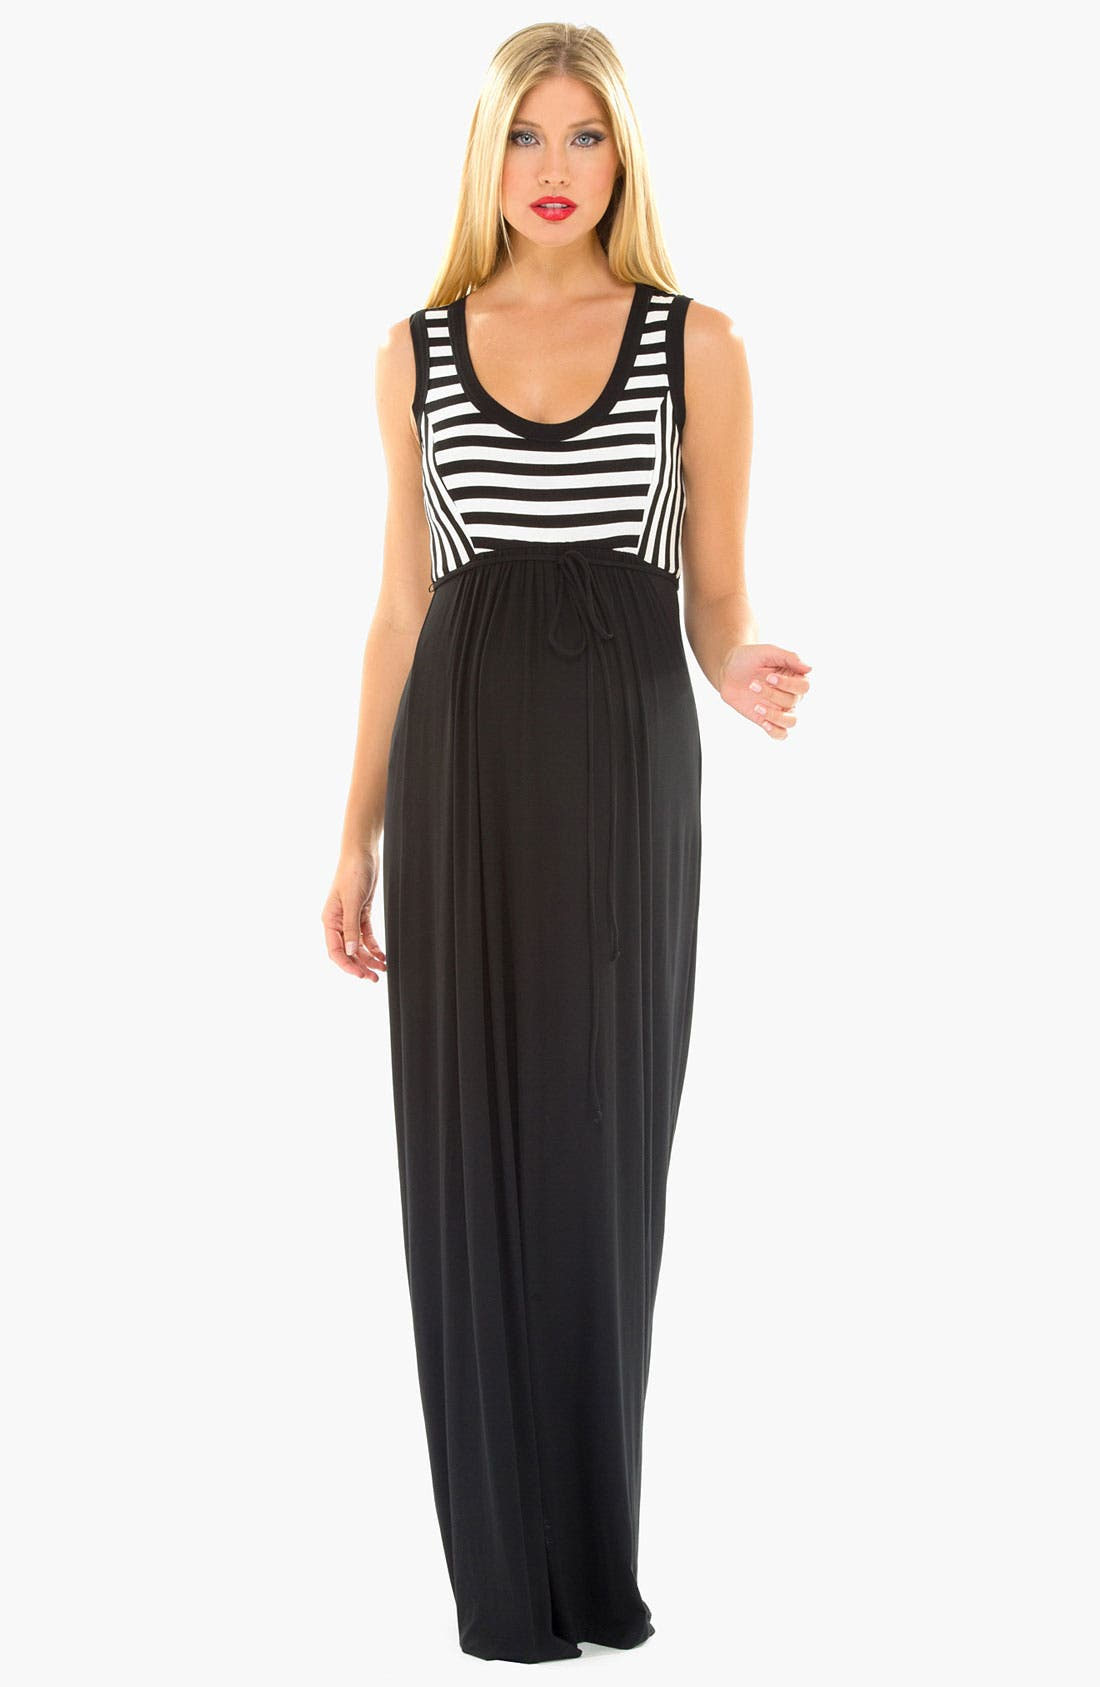 Alternate Image 1 Selected - Olian Stripe Knit Maternity Maxi Dress